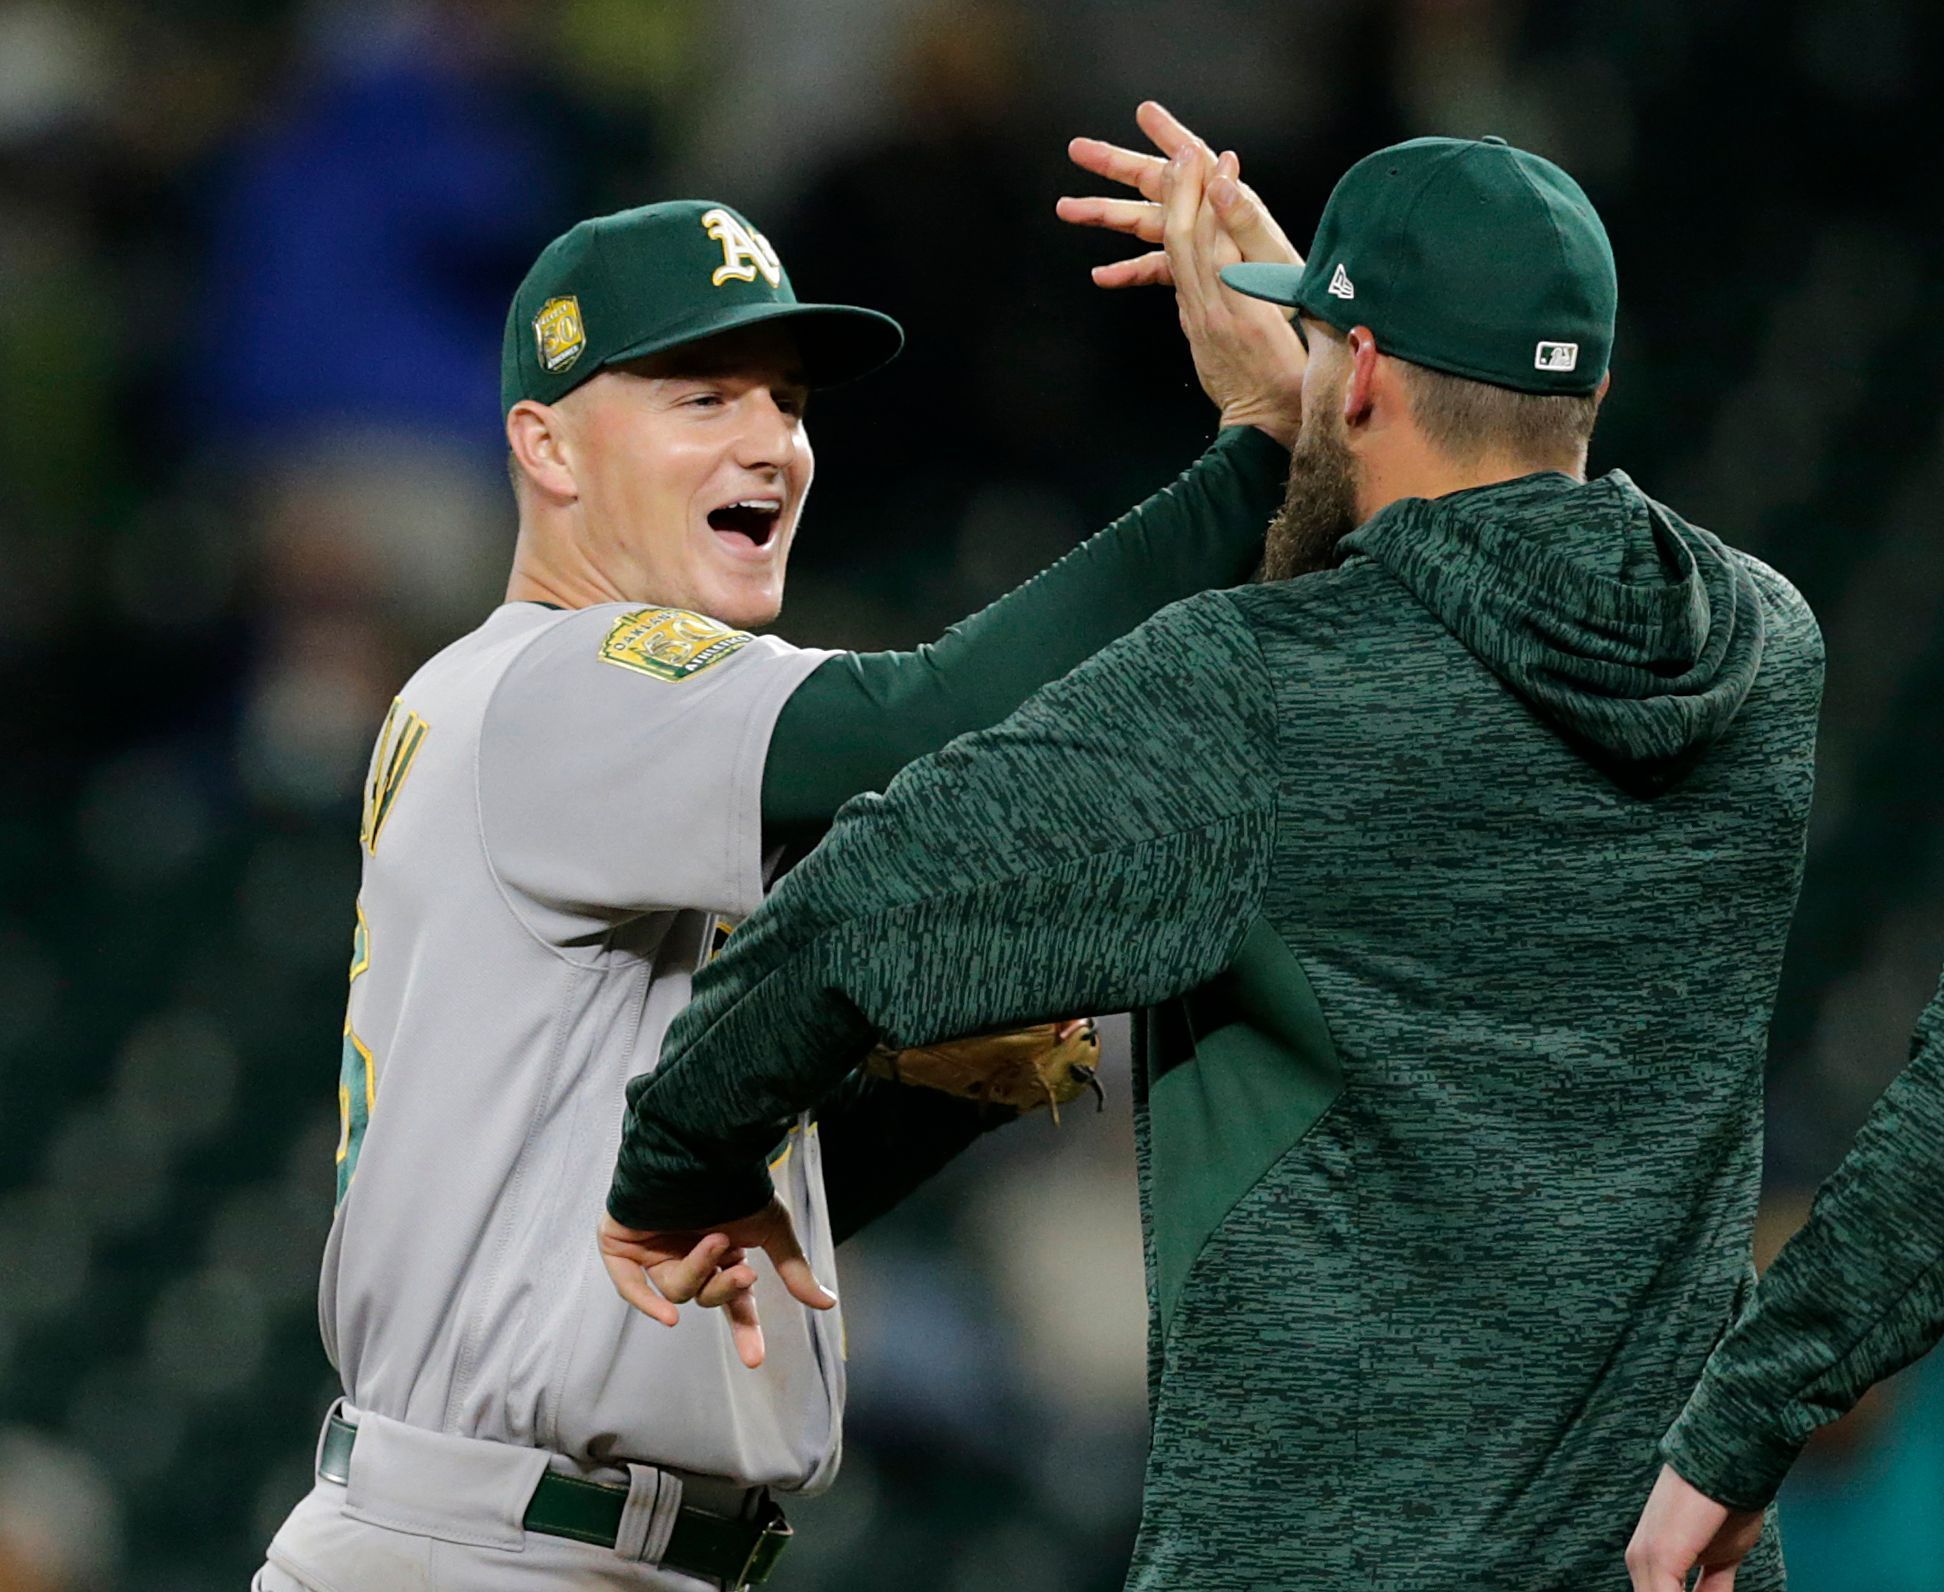 Athletics Clinch Playoff Berth With Rays Loss To Yankees Via Usatoday News Top Stories Https Ift Tt 2xnepxc Athlete Business News Oakland